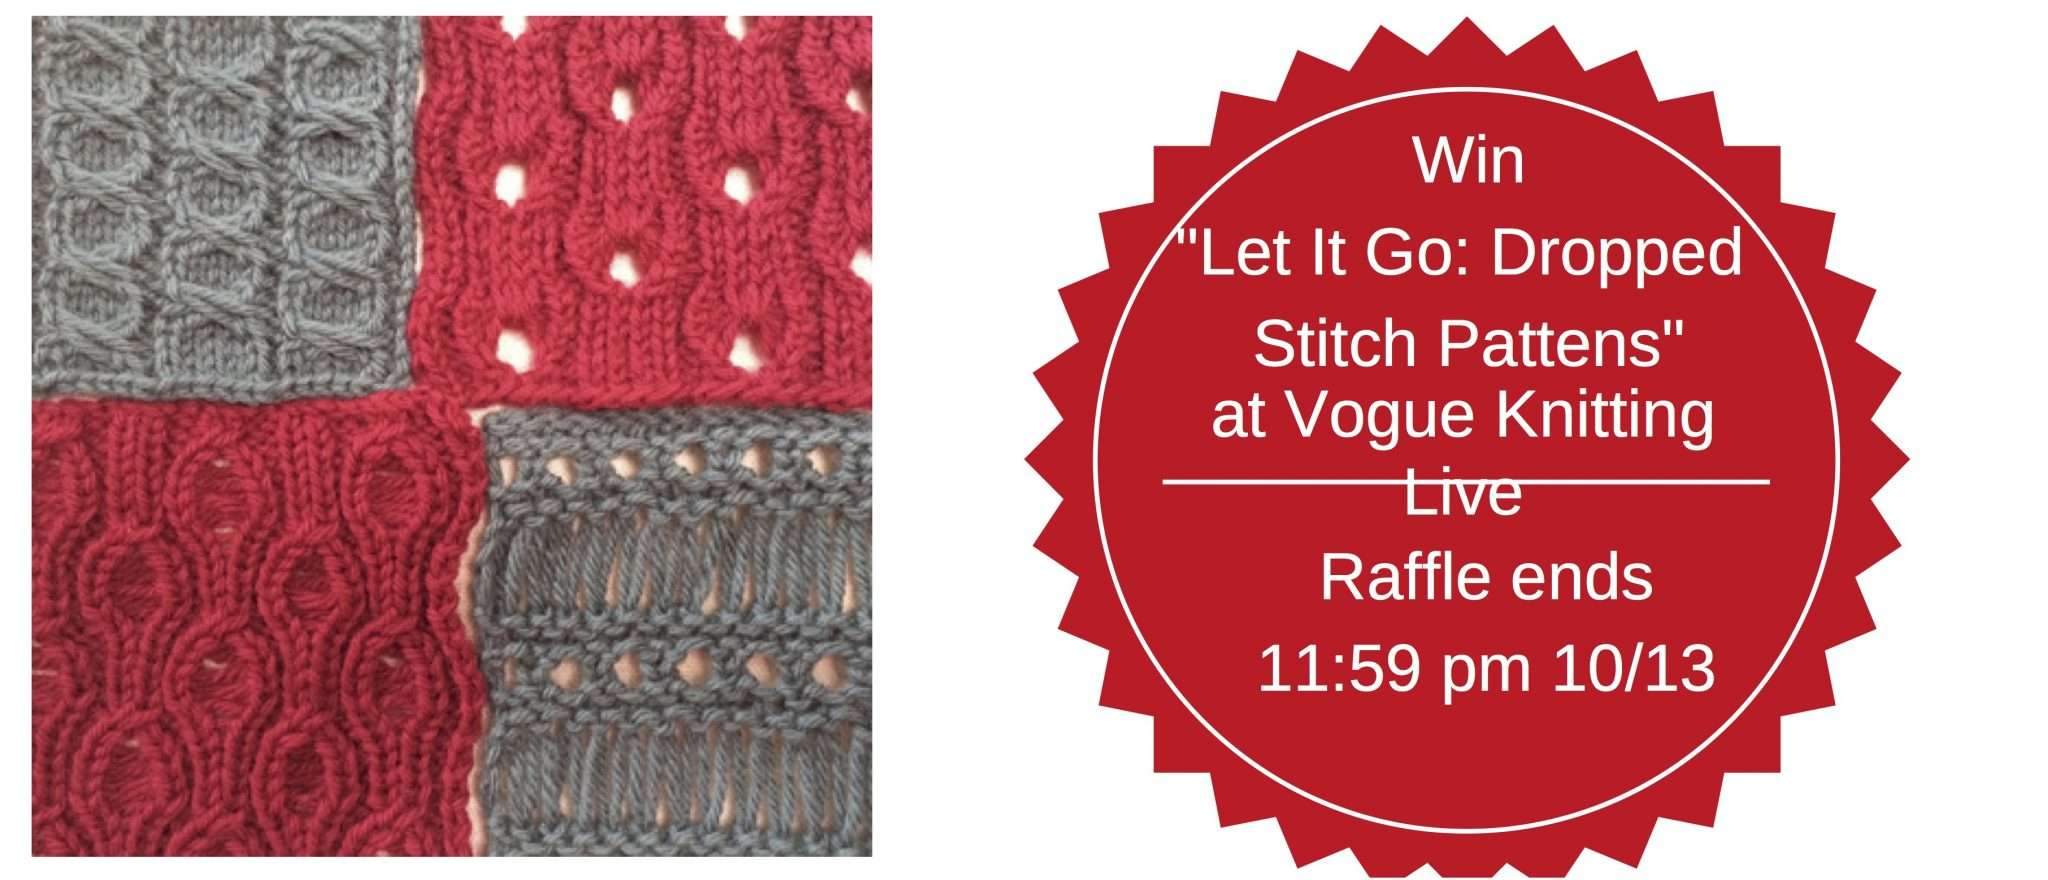 Vogue Knitting Live Class Raffle